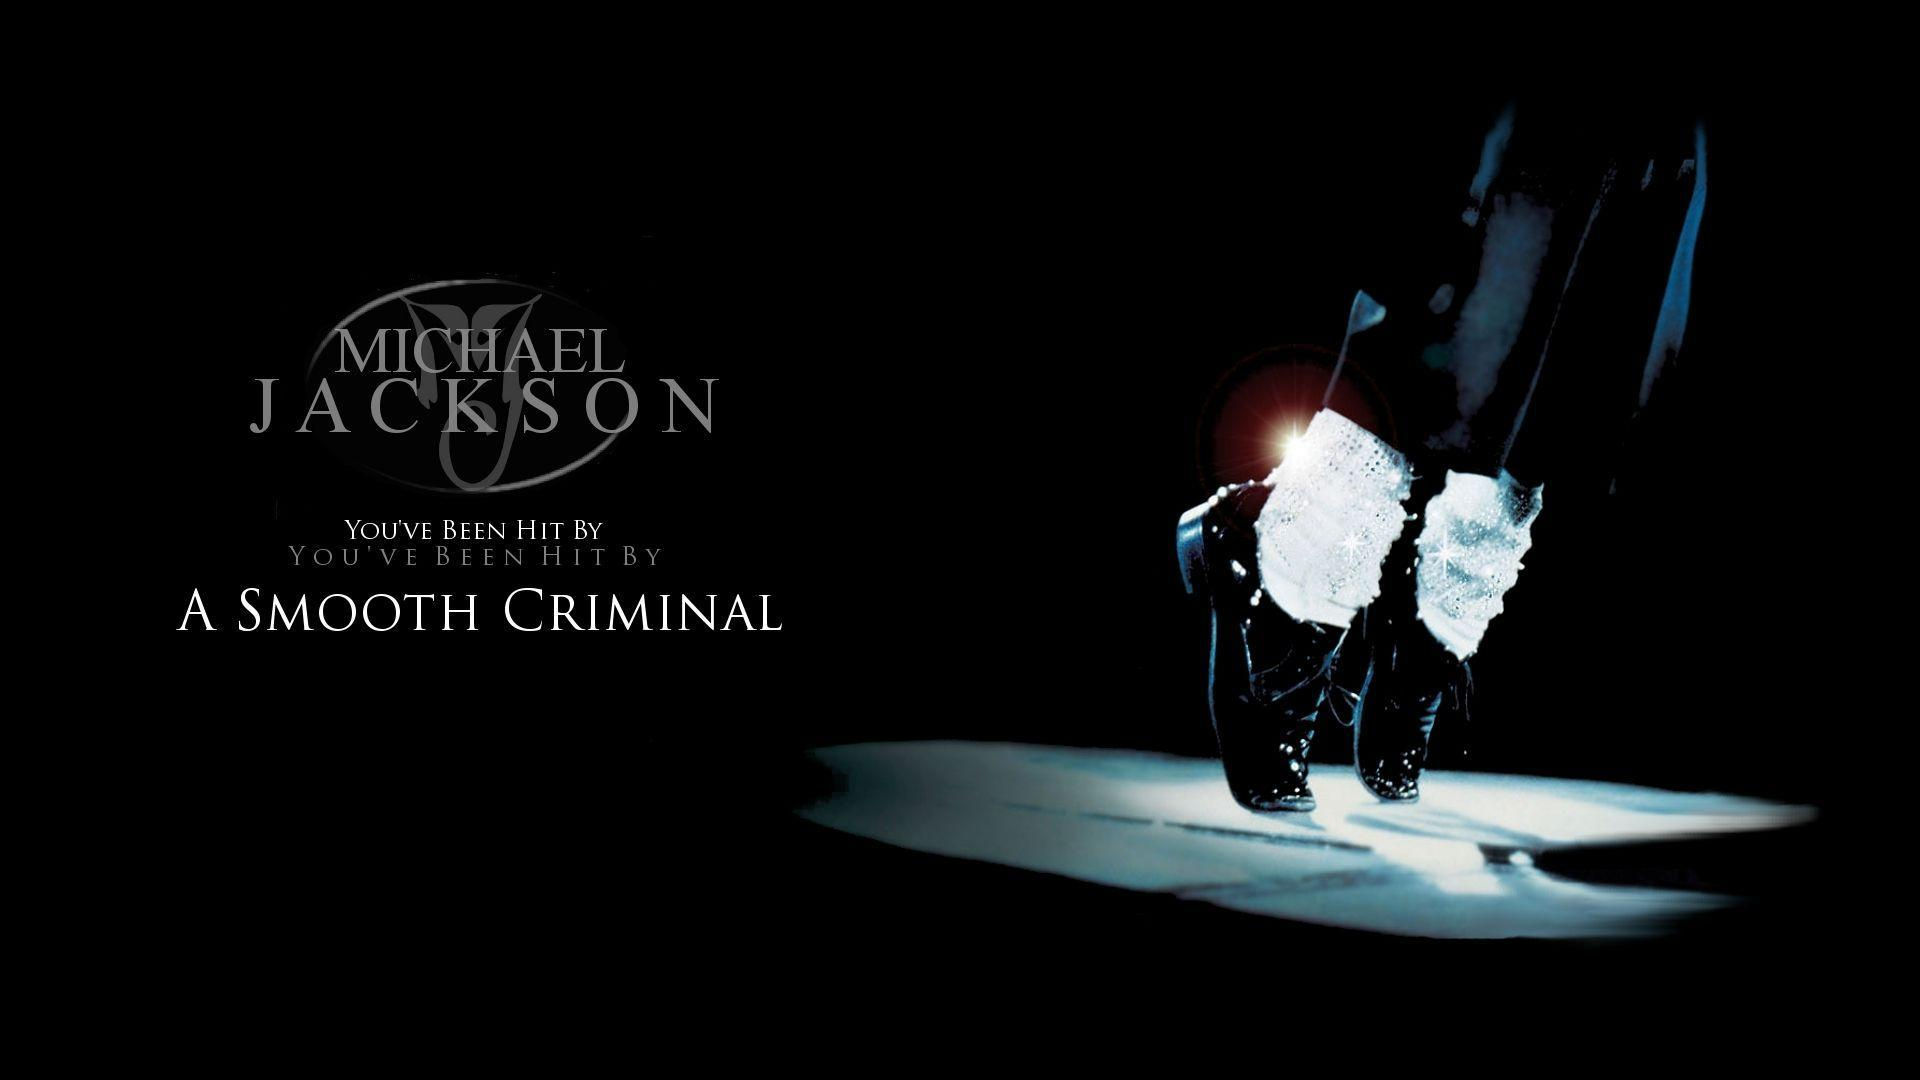 Michael Jackson Moonwalk Wallpapers Images Festival Wallpaper 1920x1080